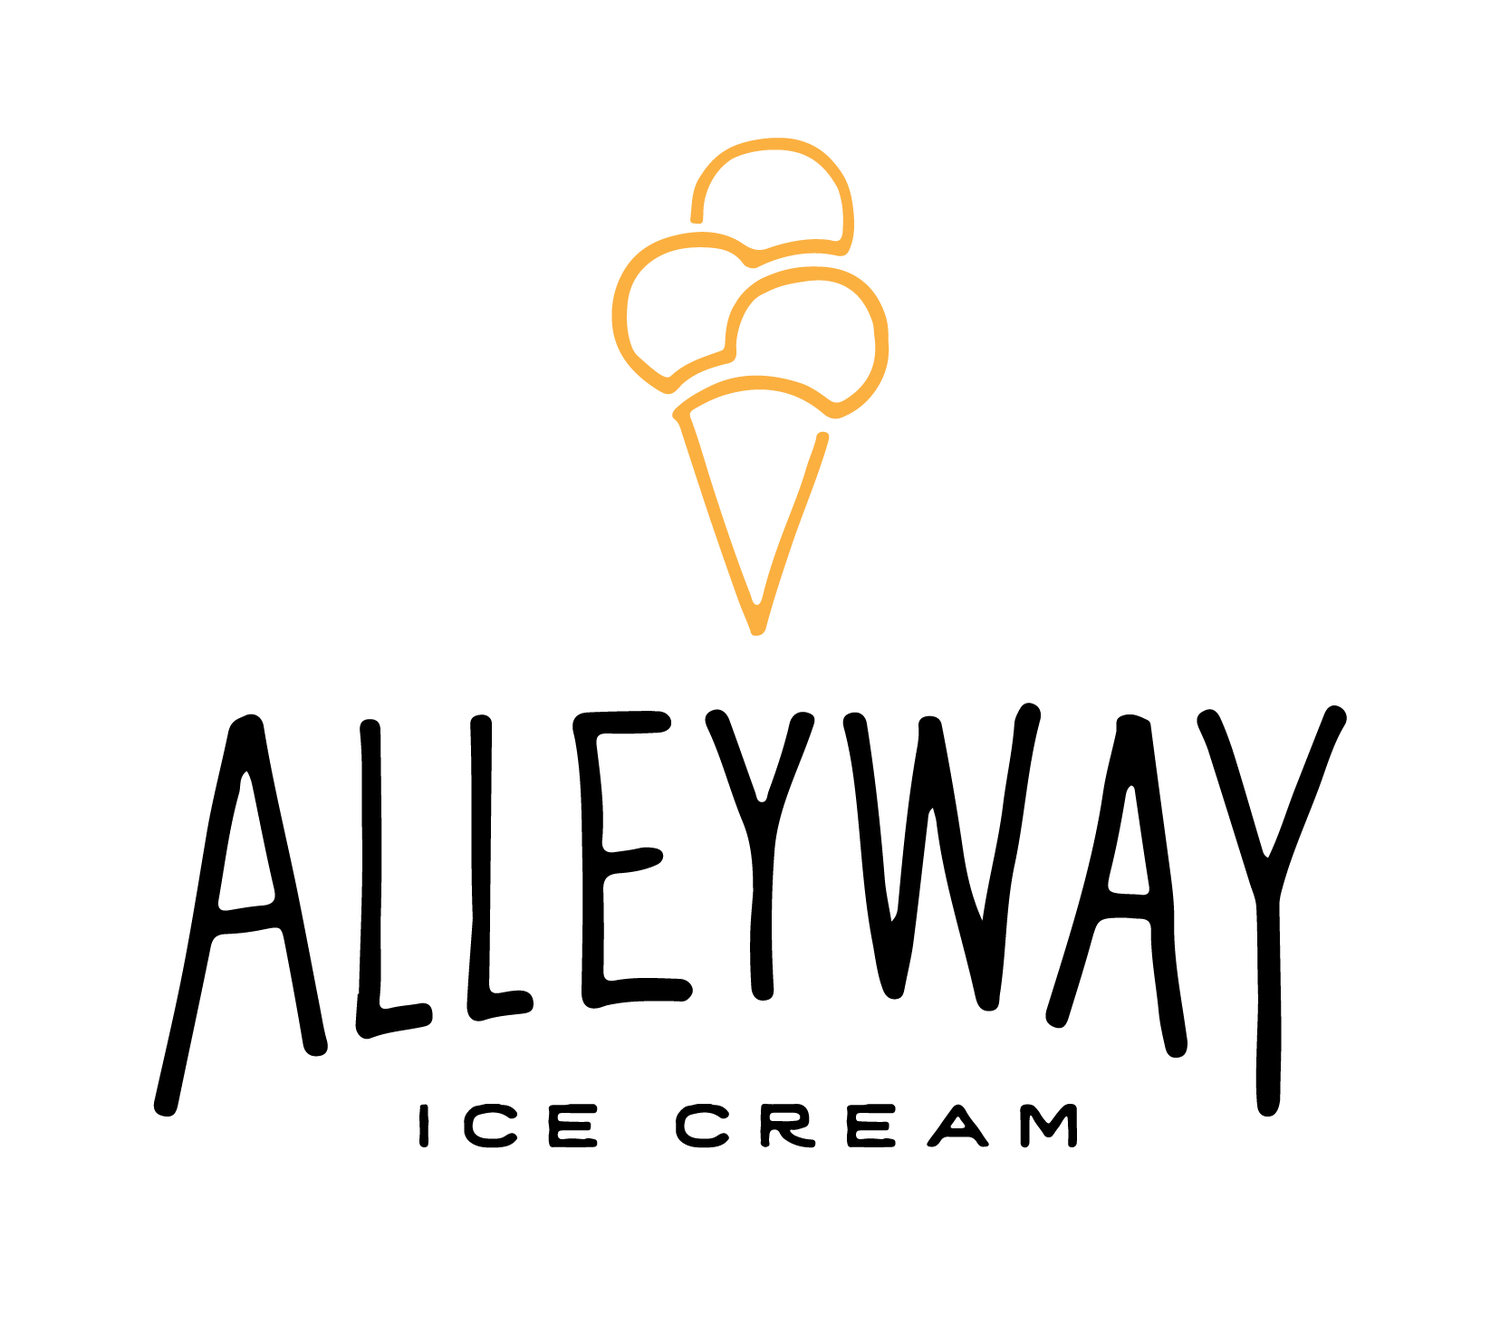 Alleyway Ice Cream